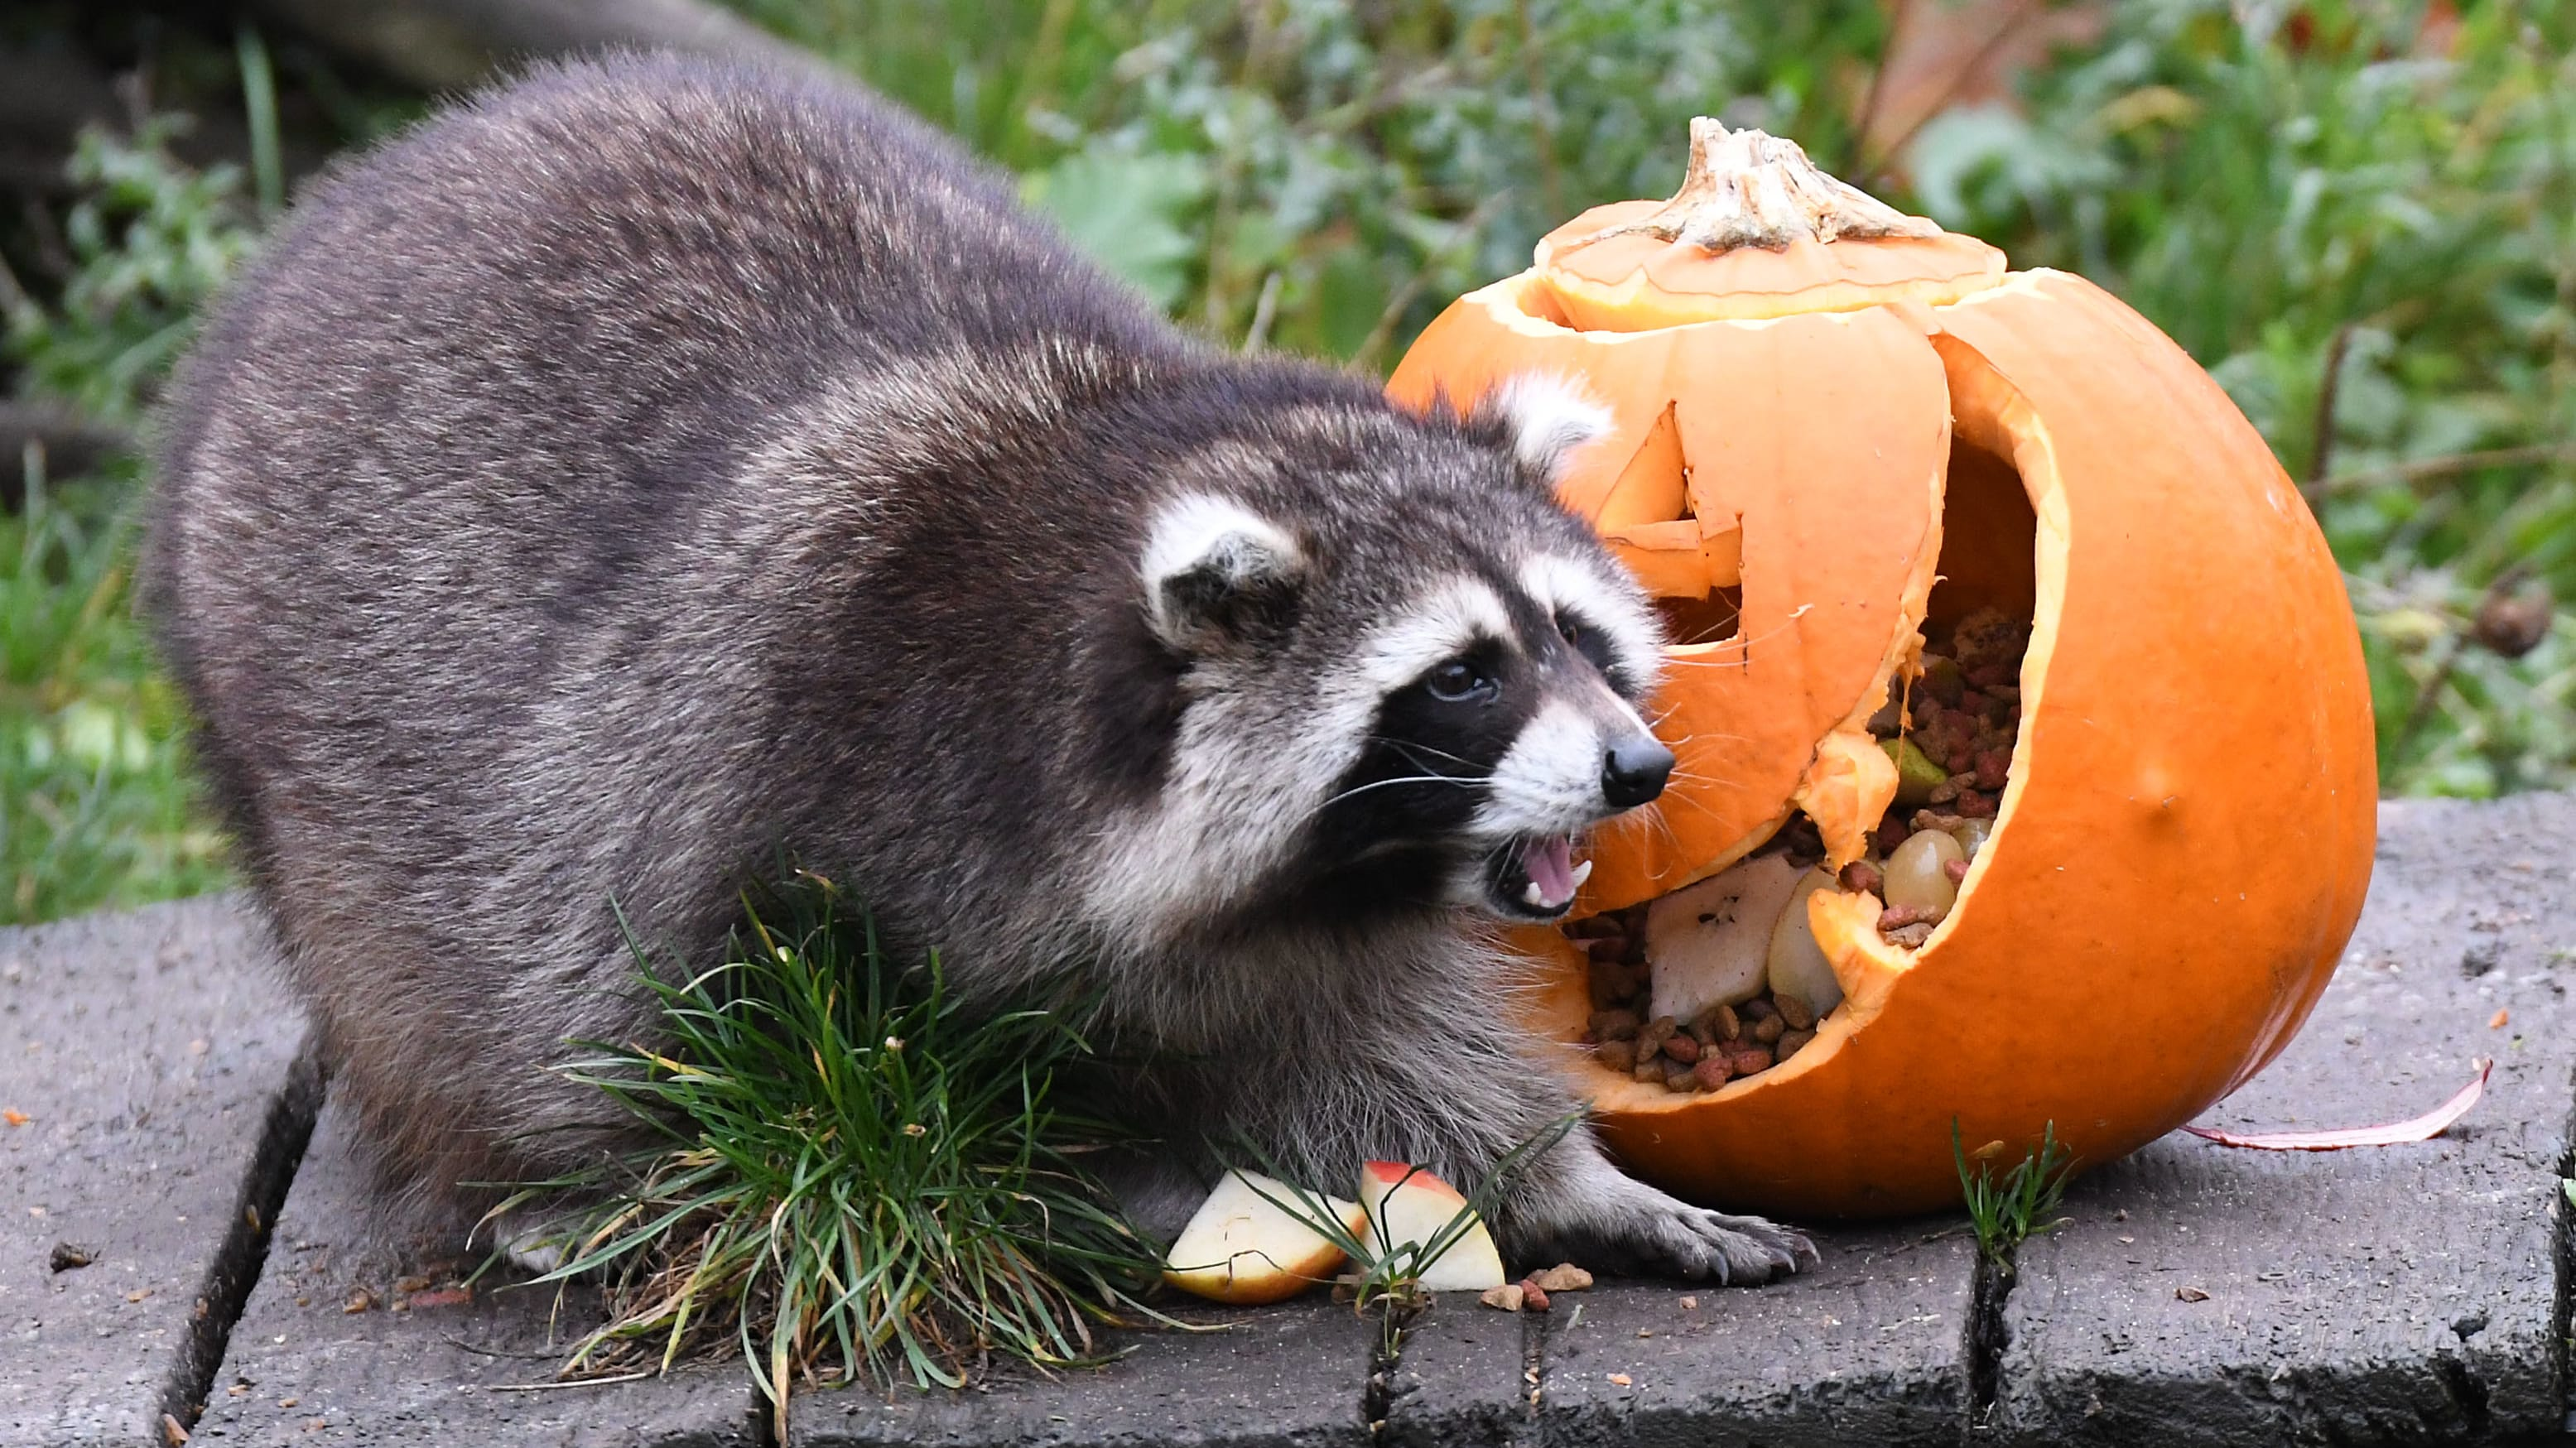 Halloween pumpkins filled with treats have been given to the animals like here a Raccoon at the Zoo in Hanover, western Germany on October 25, 2018. - Halloween is celebrated in a number of countries on October 31. (Photo by Peter Steffen / dpa / AFP) / Germany OUT        (Photo credit should read PETER STEFFEN/AFP/Getty Images)